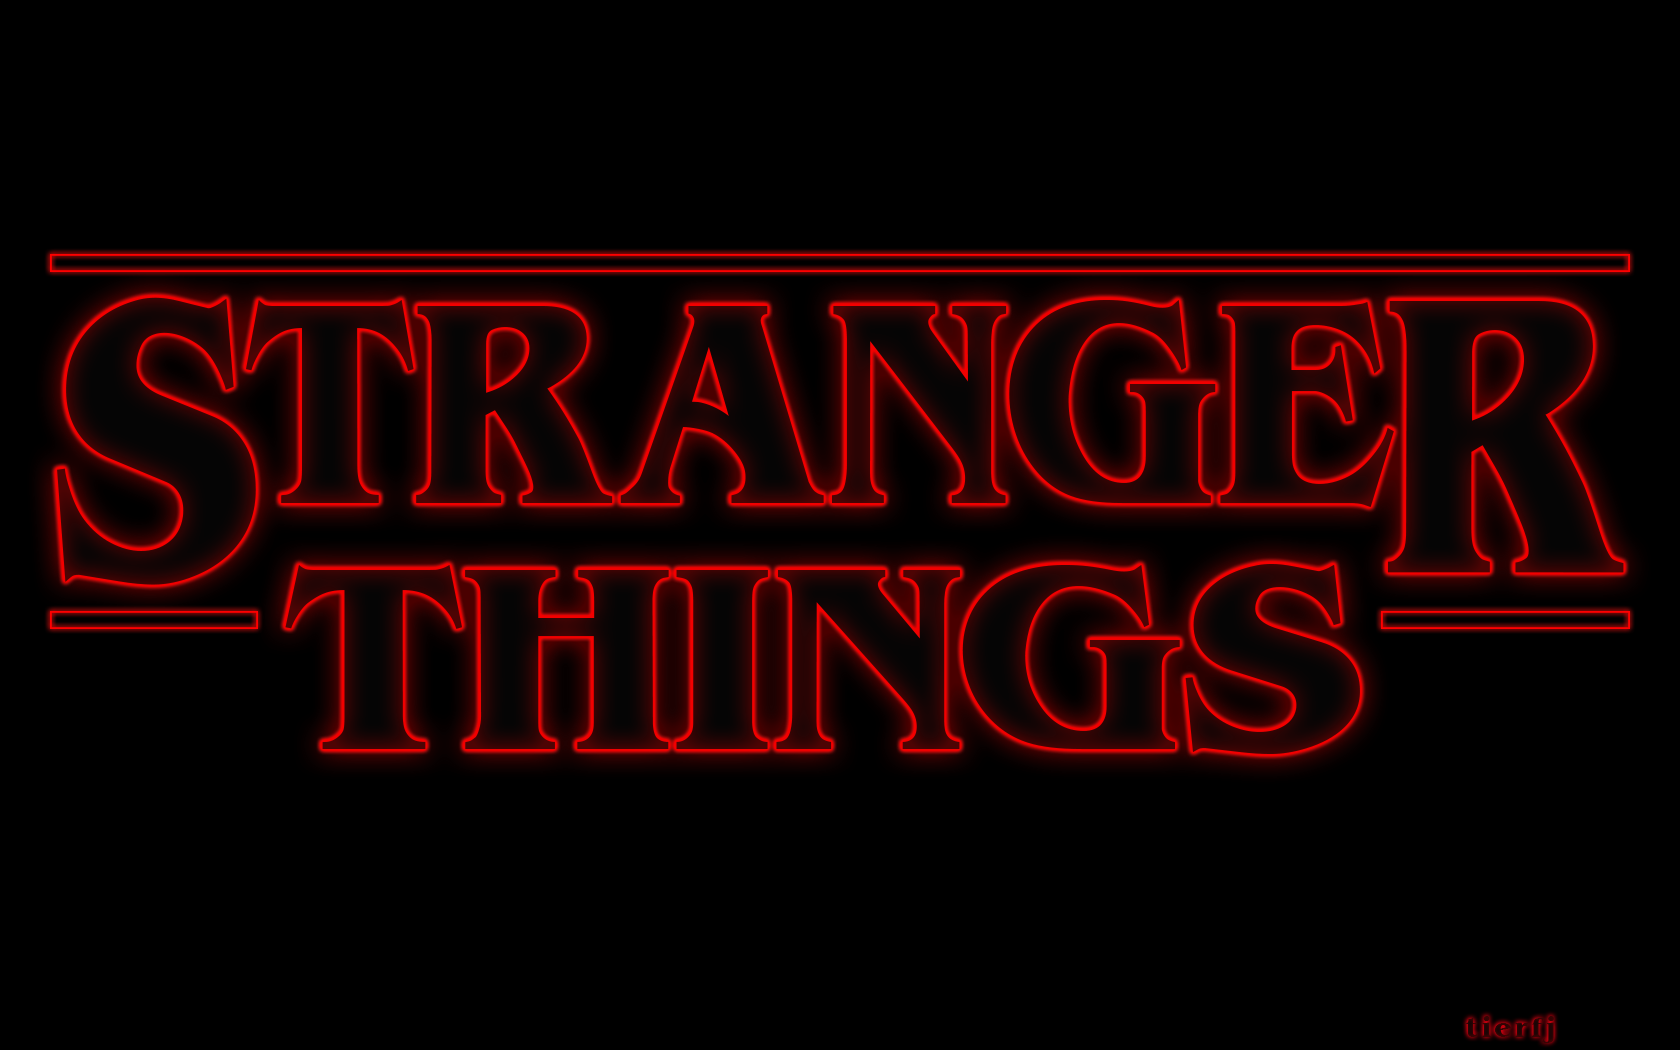 Stranger Things Wallpaper Pictures to Pin 1680x1050